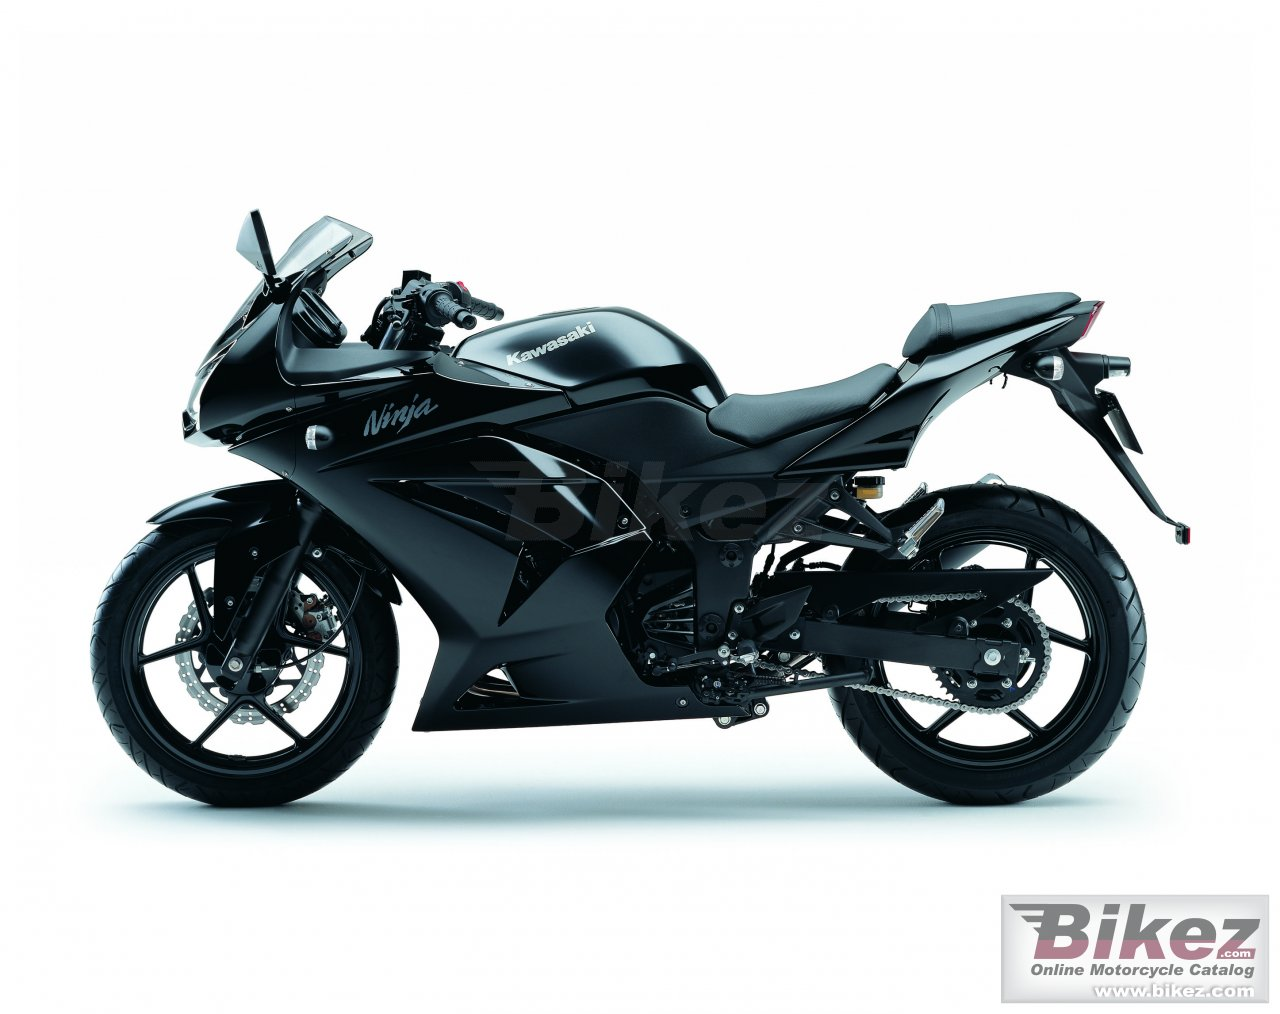 Big Kawasaki ninja 250r picture and wallpaper from Bikez.com